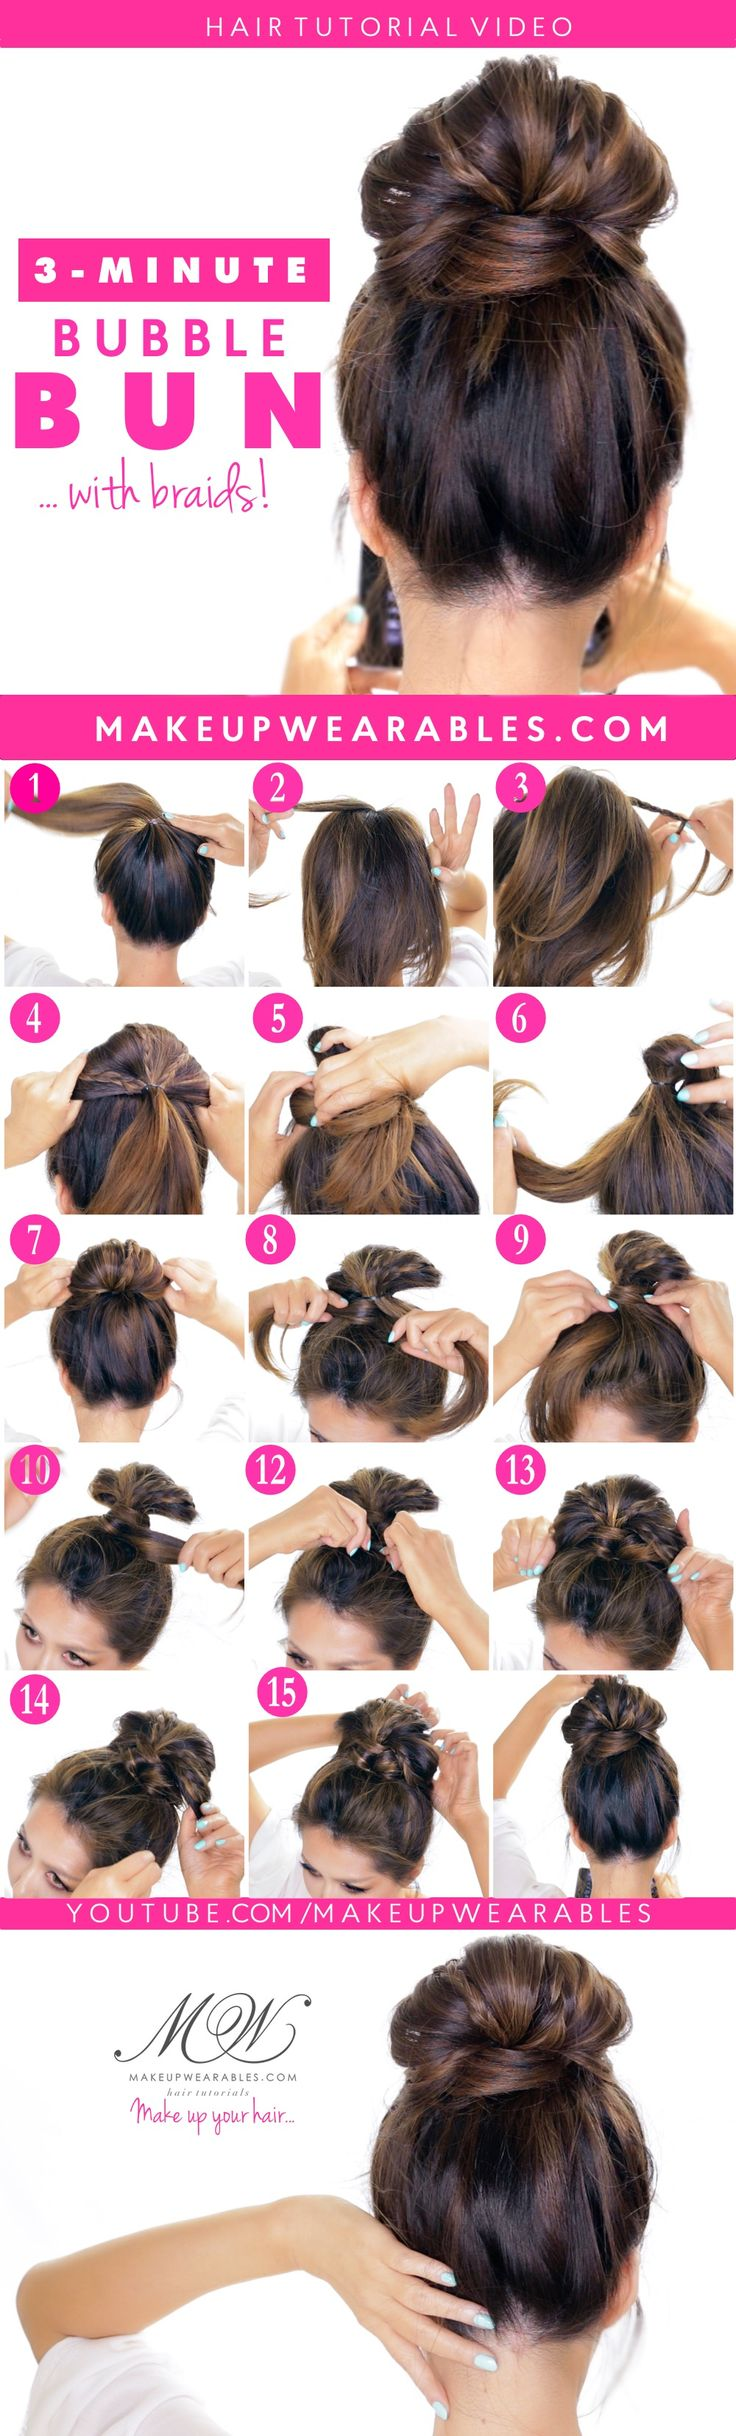 how to - Bubble Messy Bun Hairstyle with braids - easy hairstyles for medium long hair